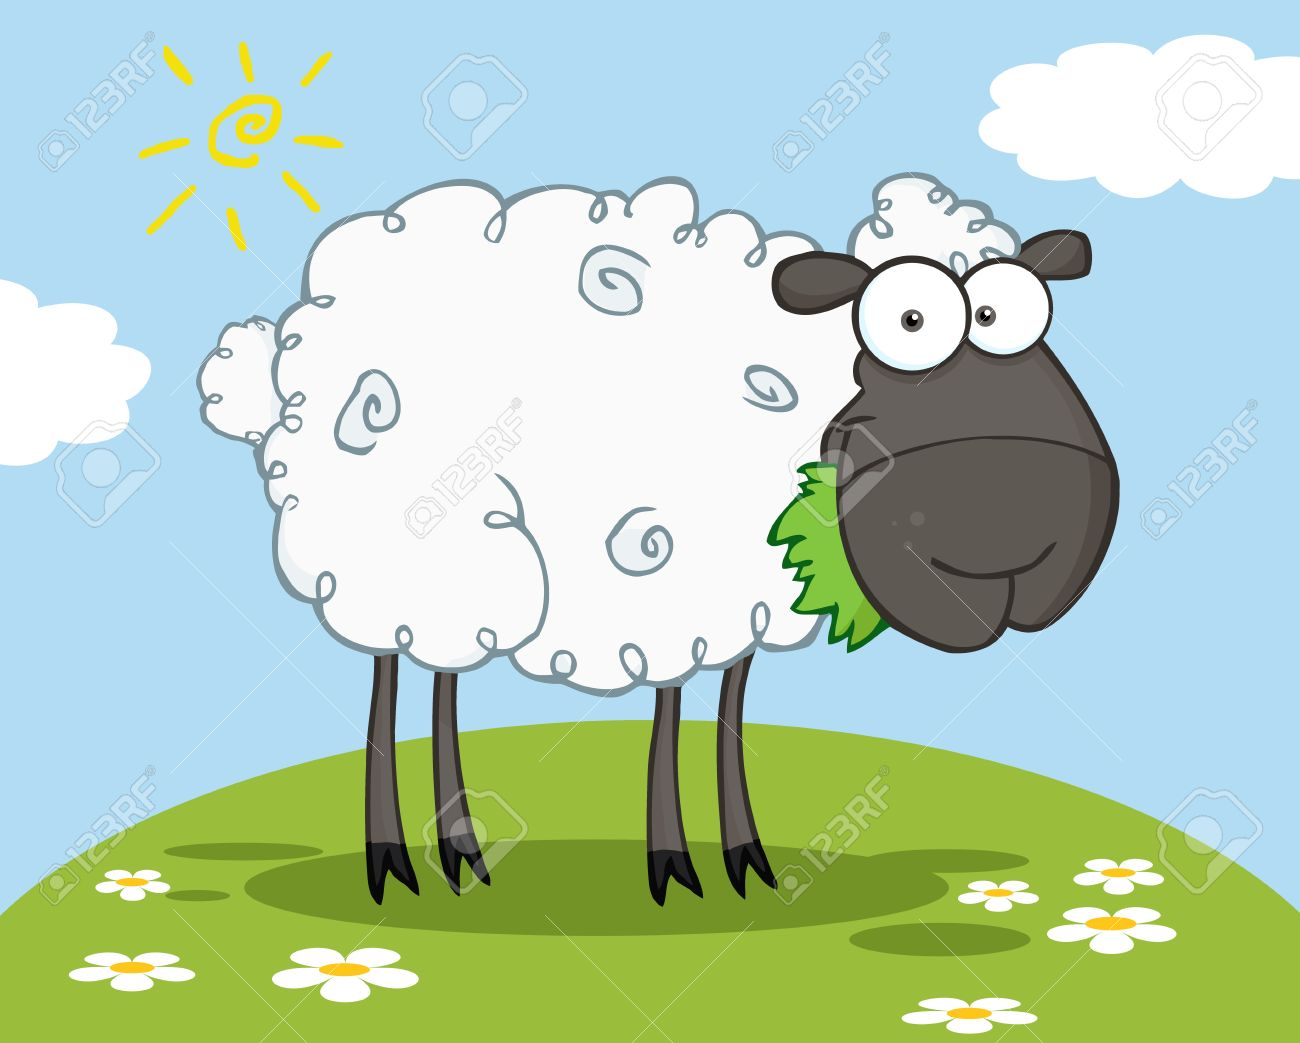 Black Sheep Cartoon Character Eating A Grass On A Hill Stock Vector - 9276701